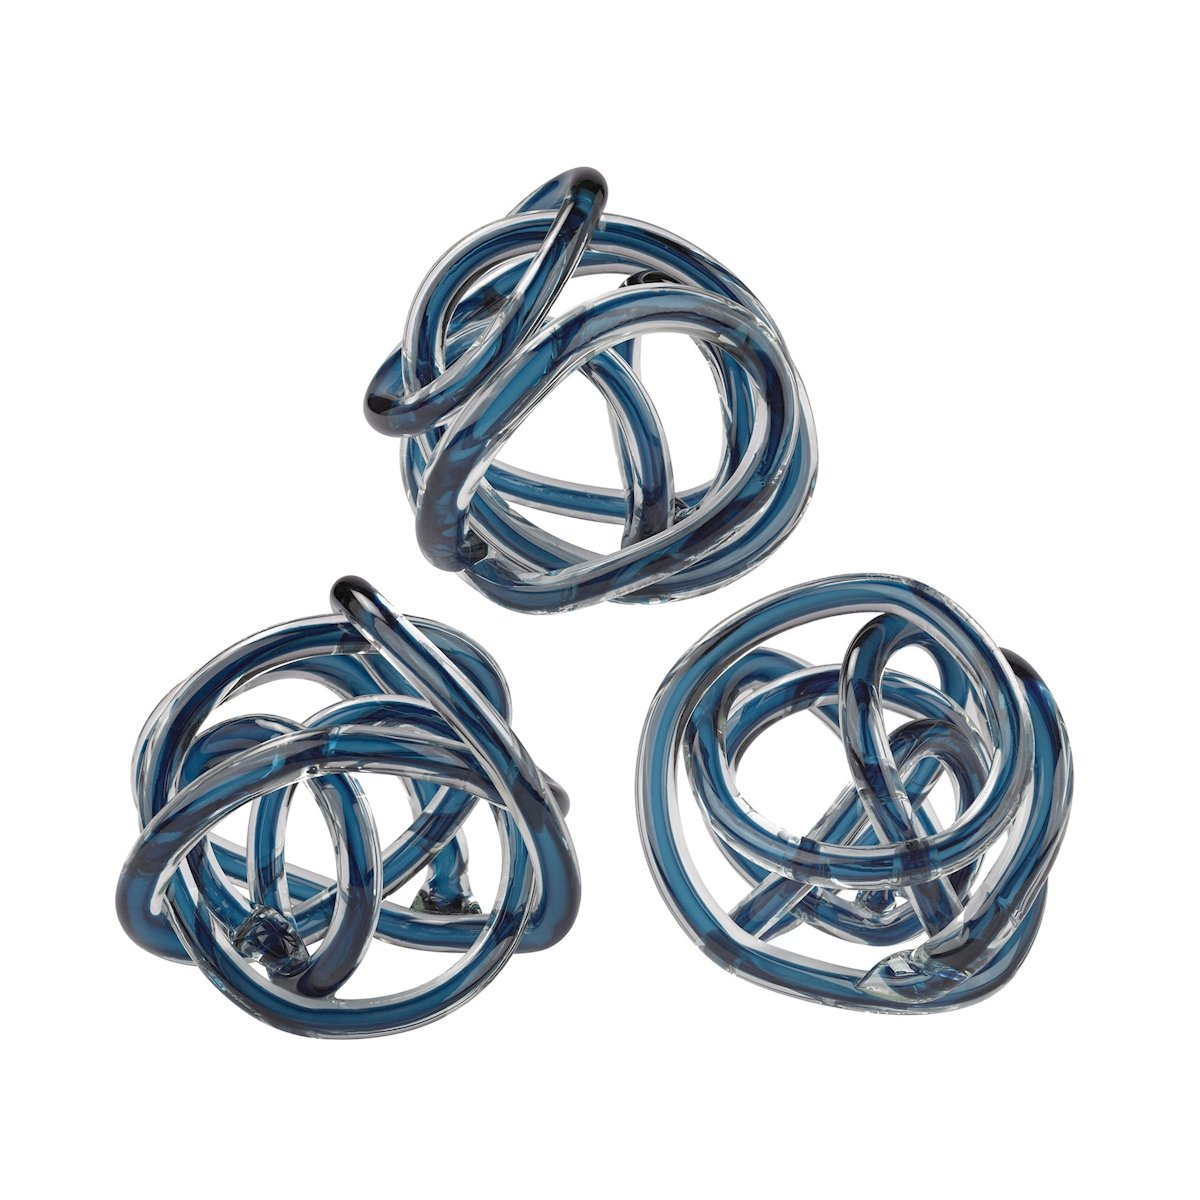 Artistic Set of 3 Glass Knots, Navy Blue by Artistic